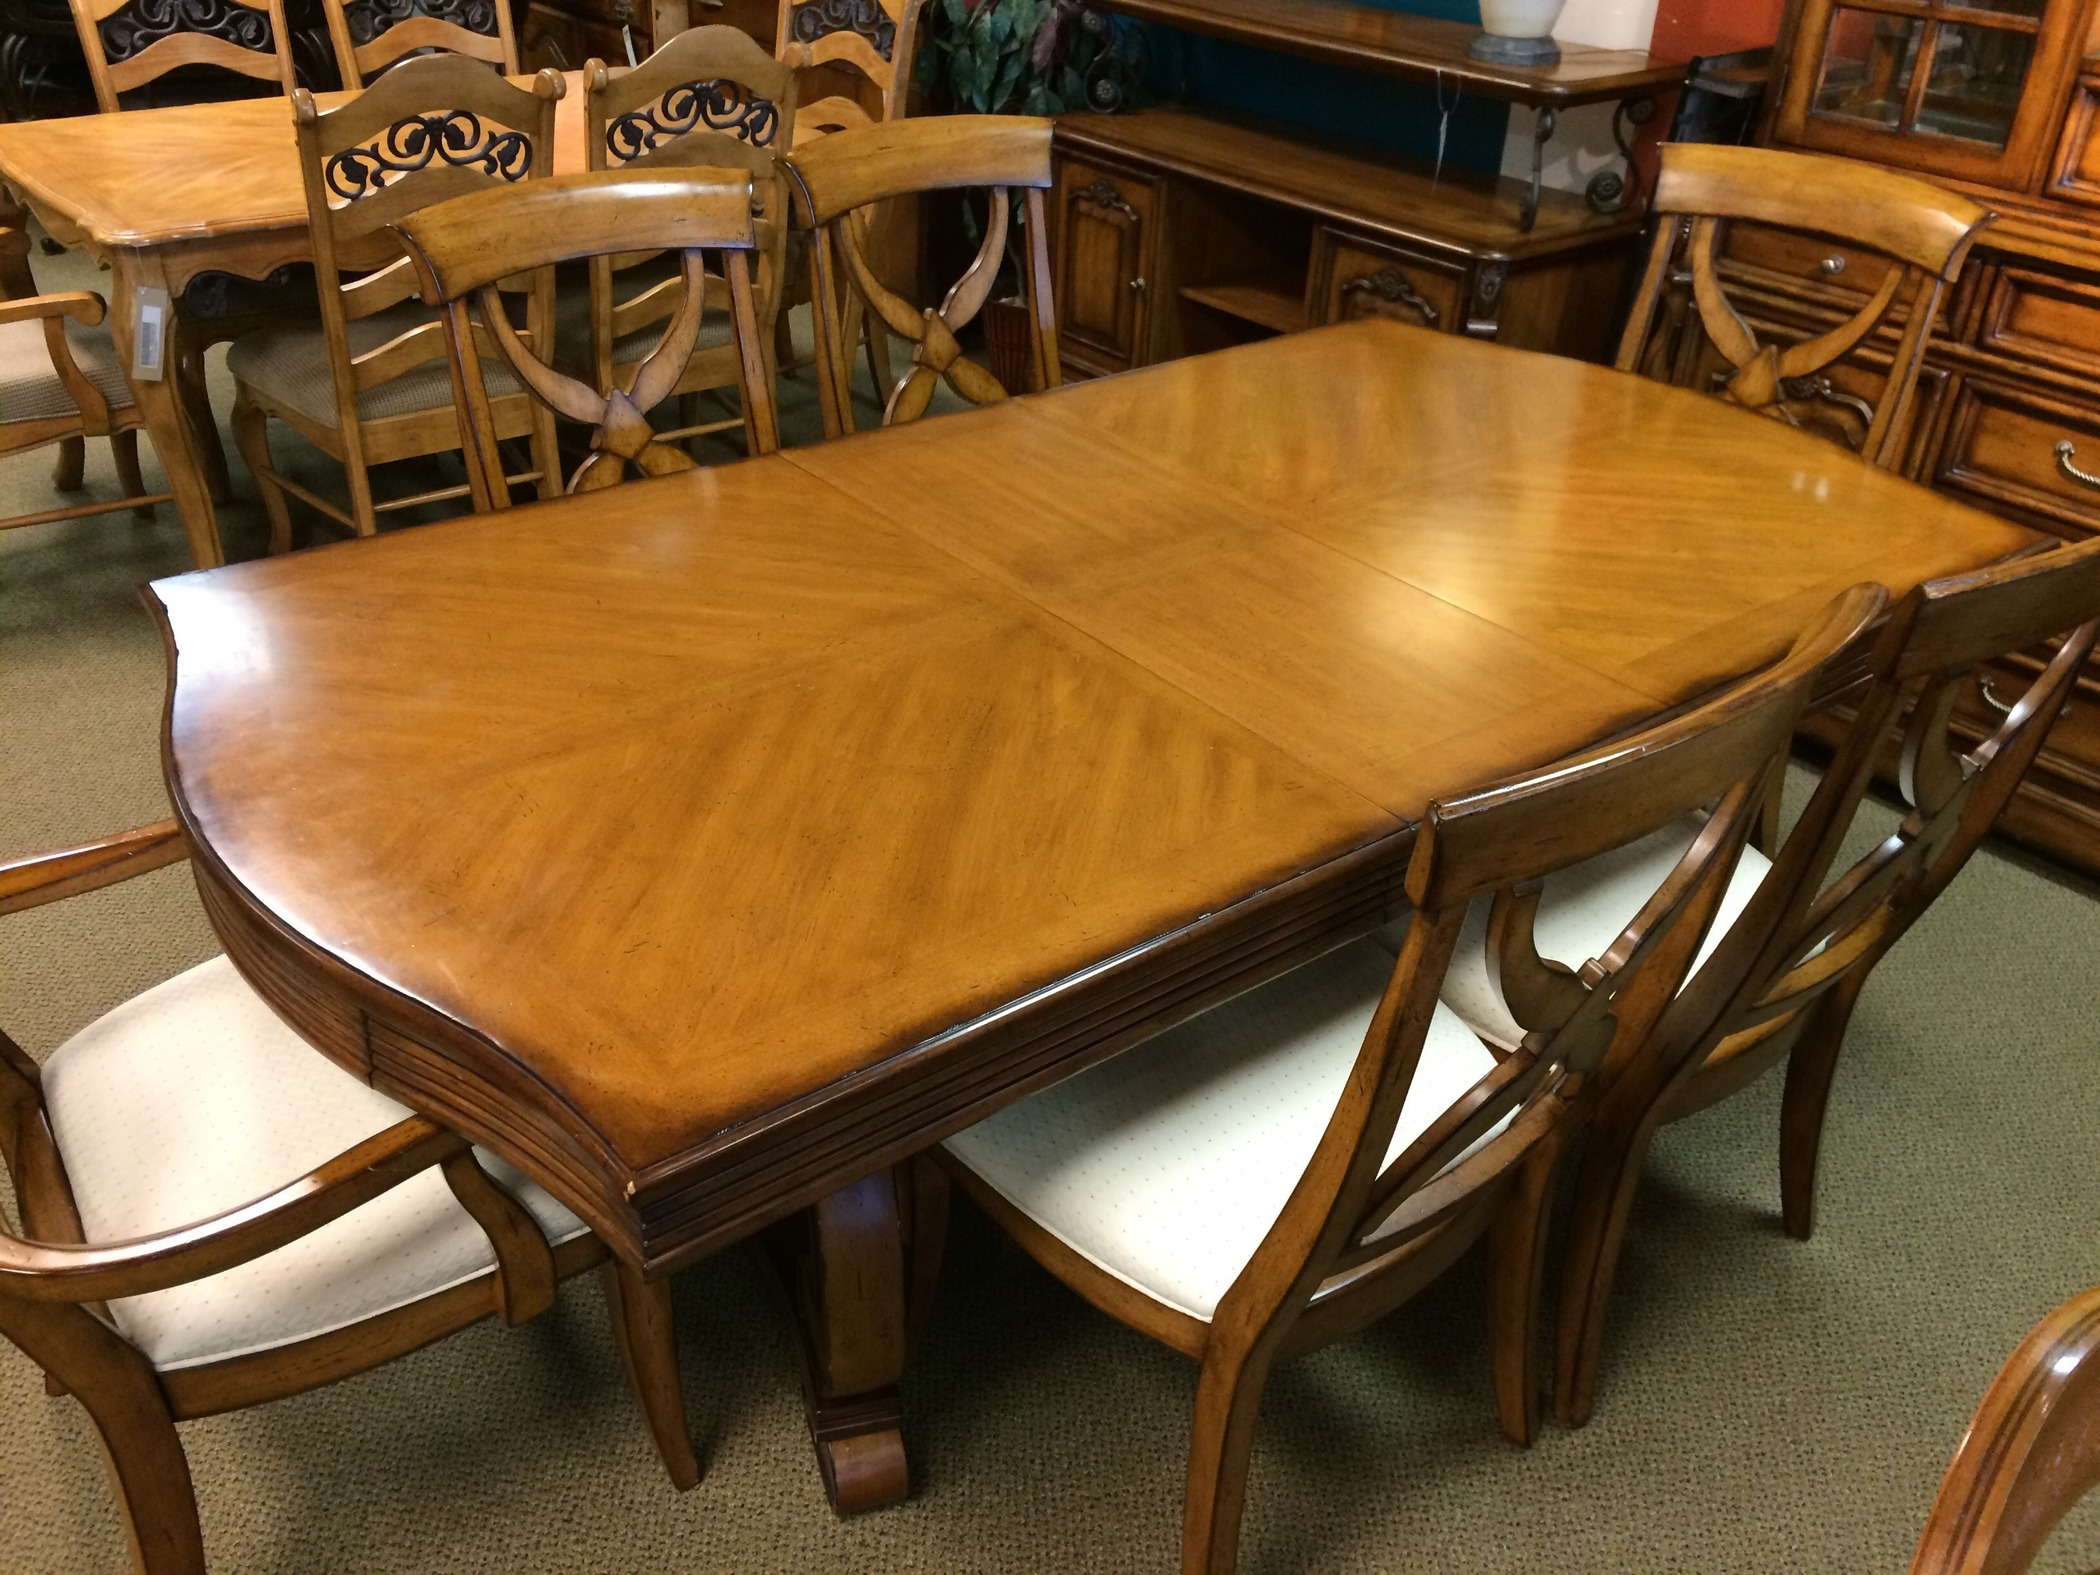 LIZ CLAIBORNE DINING ROOM | Allegheny Furniture Consignment